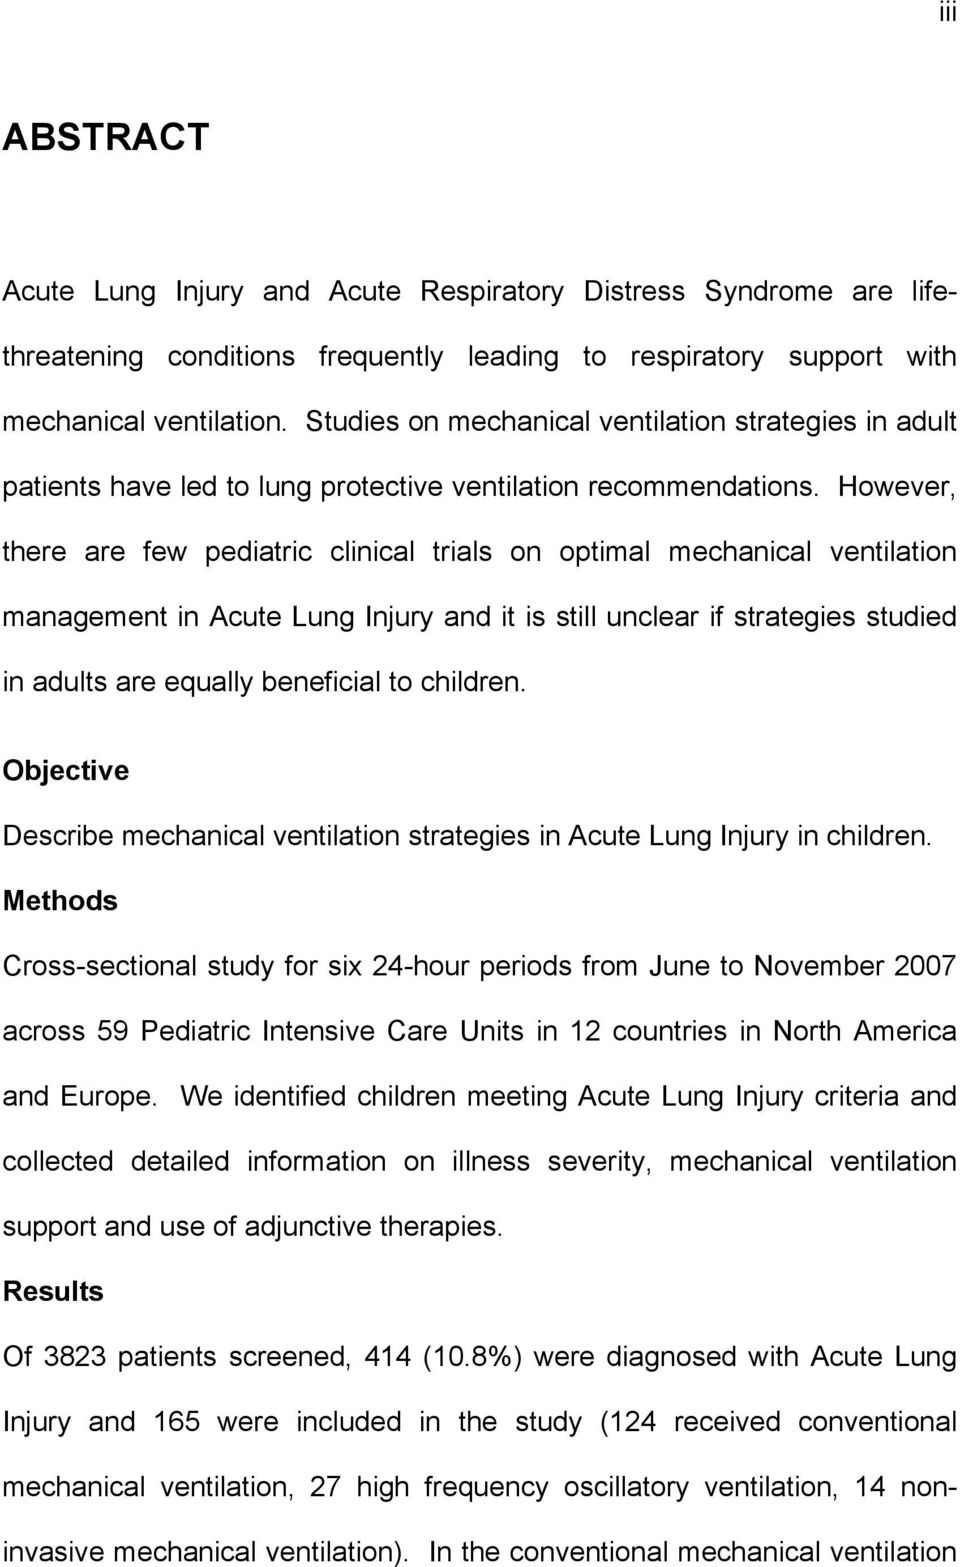 However, there are few pediatric clinical trials on optimal mechanical ventilation management in Acute Lung Injury and it is still unclear if strategies studied in adults are equally beneficial to